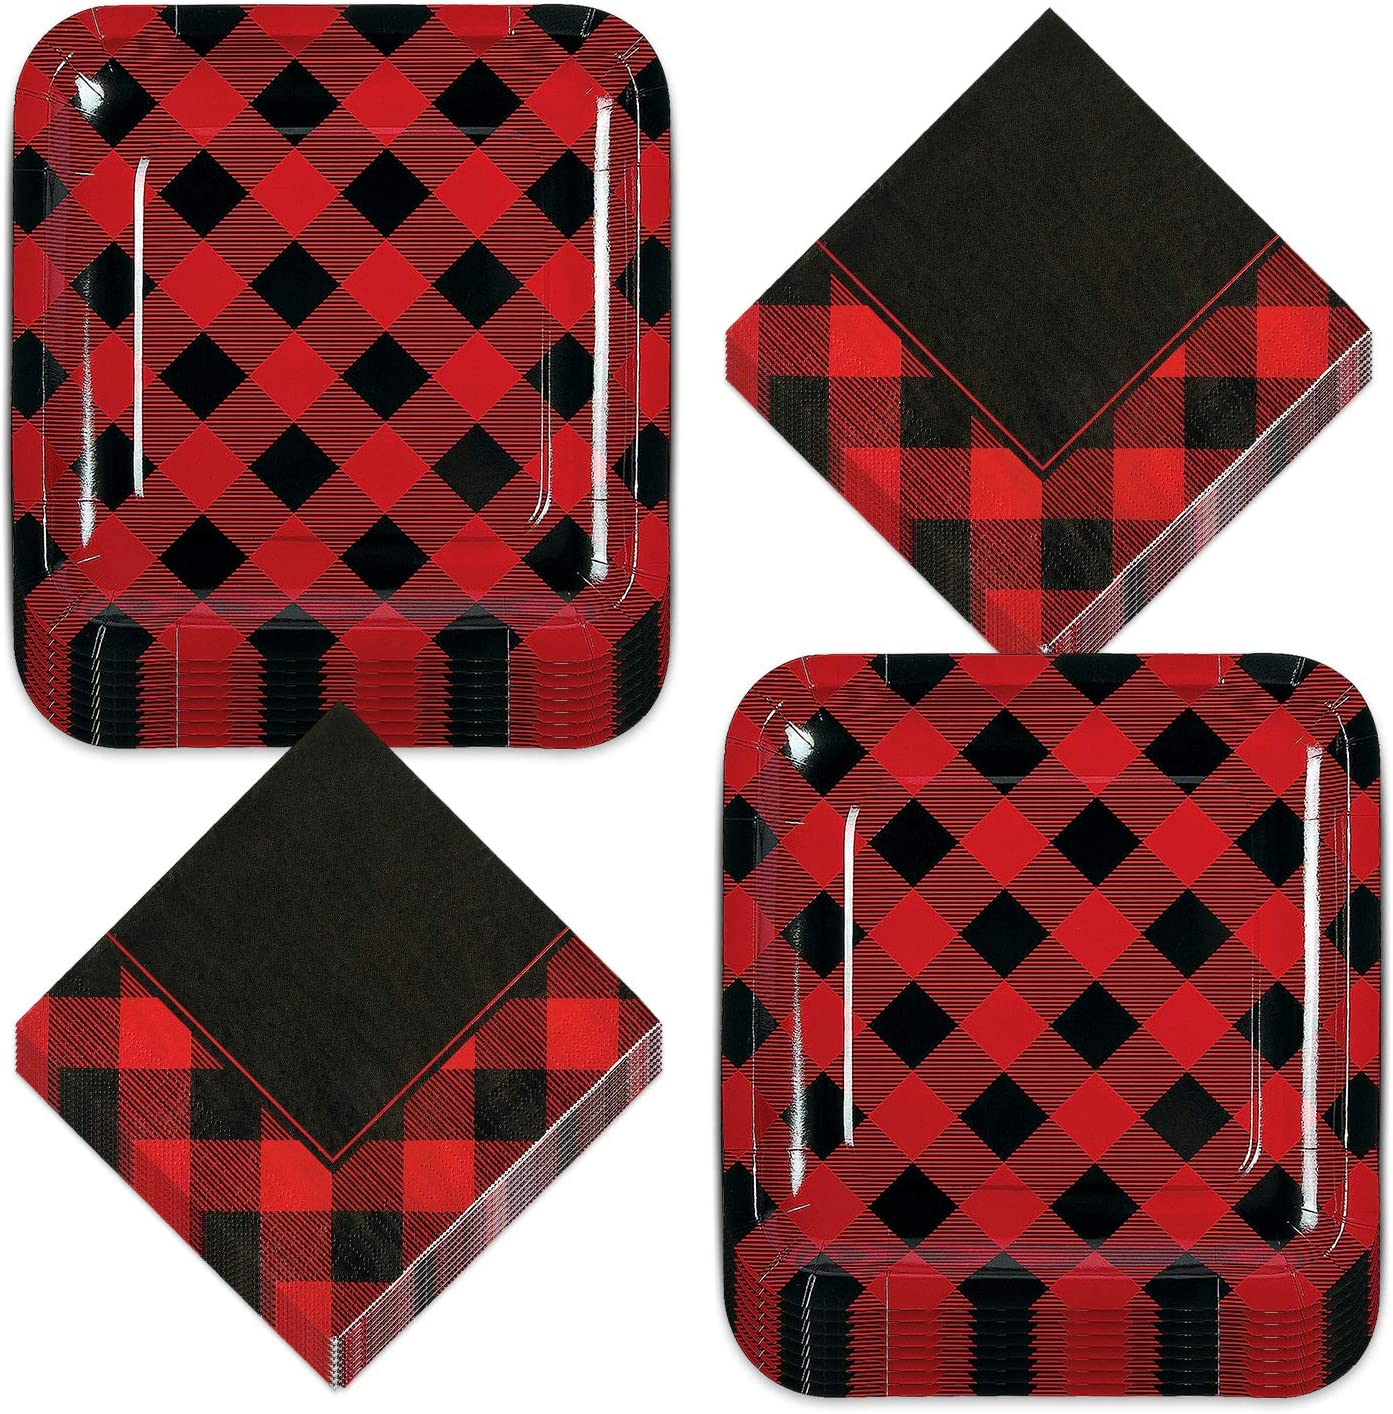 Buffalo Plaid Party Supplies - Red and Black Checkered Paper Dinner Plates and Luncheon Napkins (Serves 16)